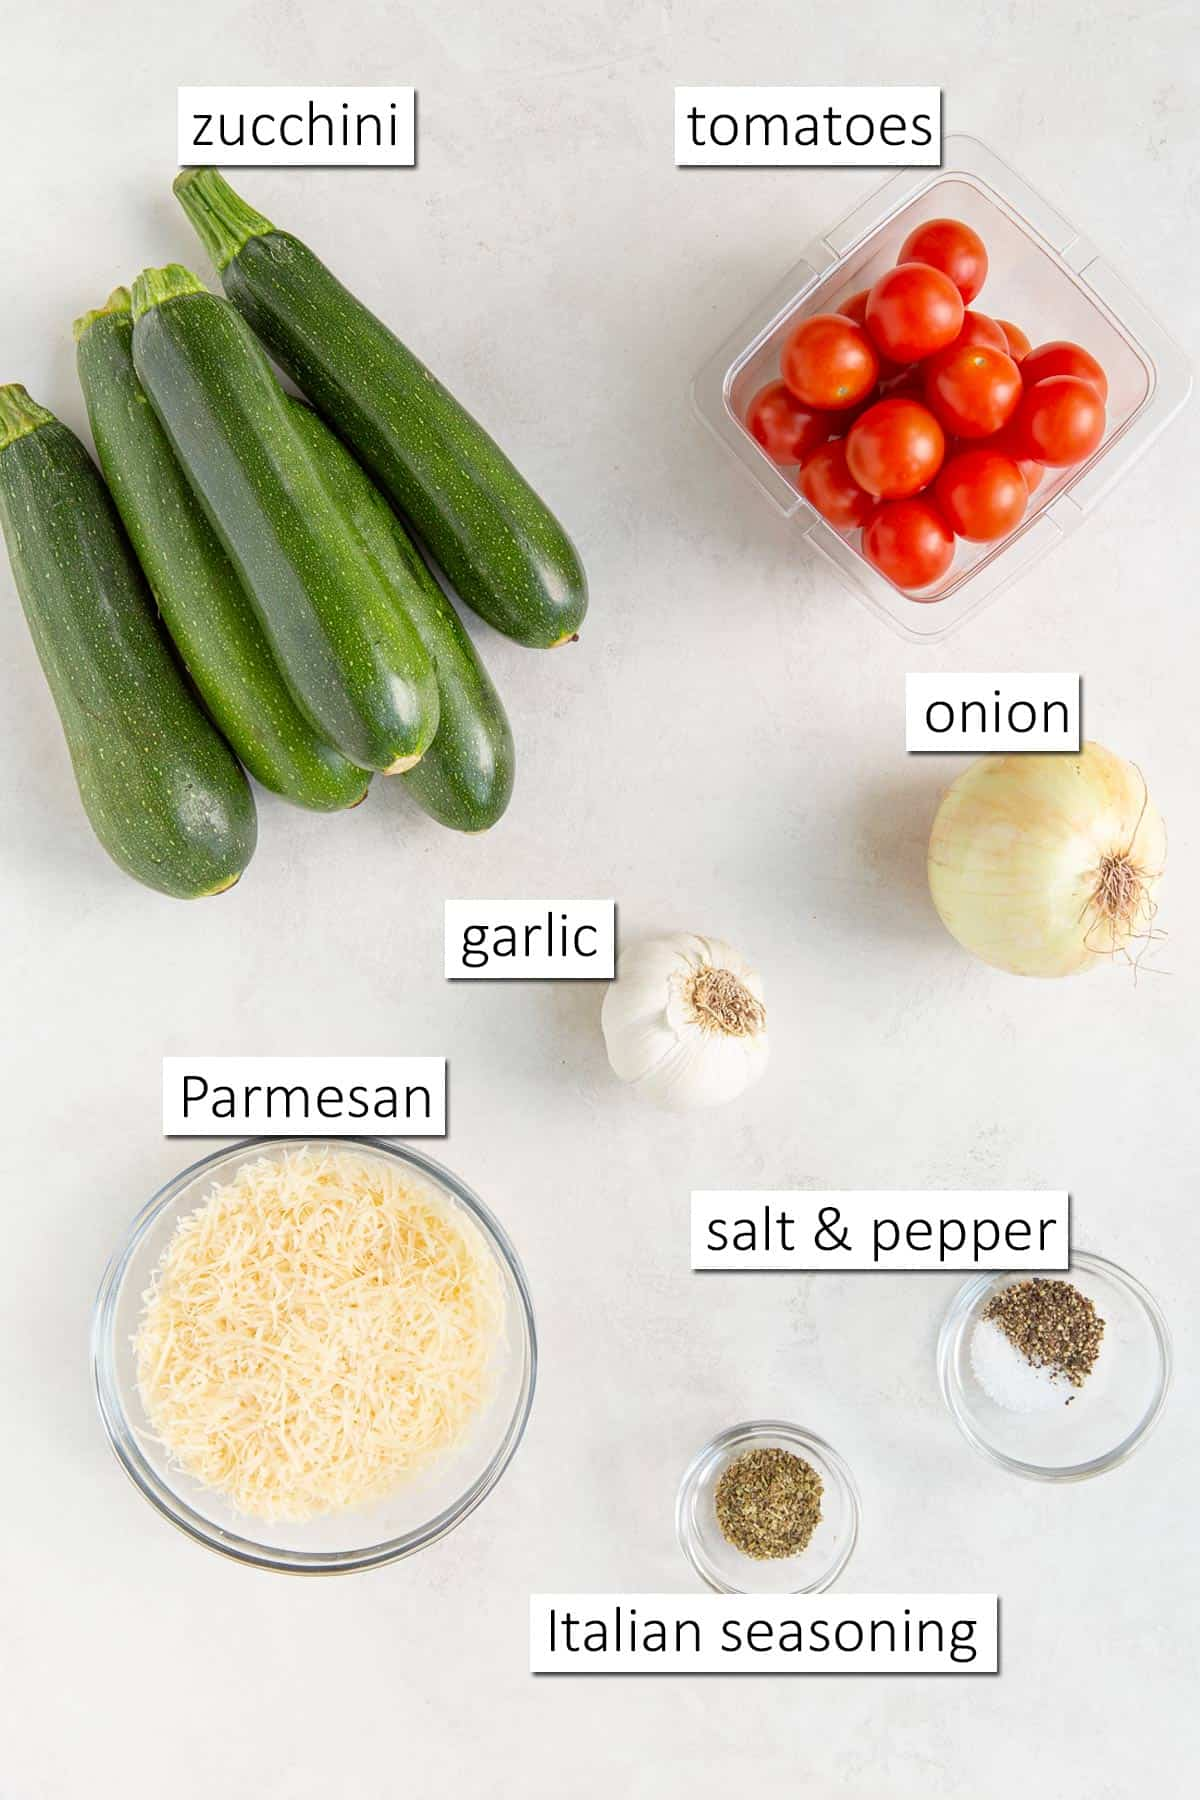 Overhead view of ingredients needed for zucchini tomato bake.